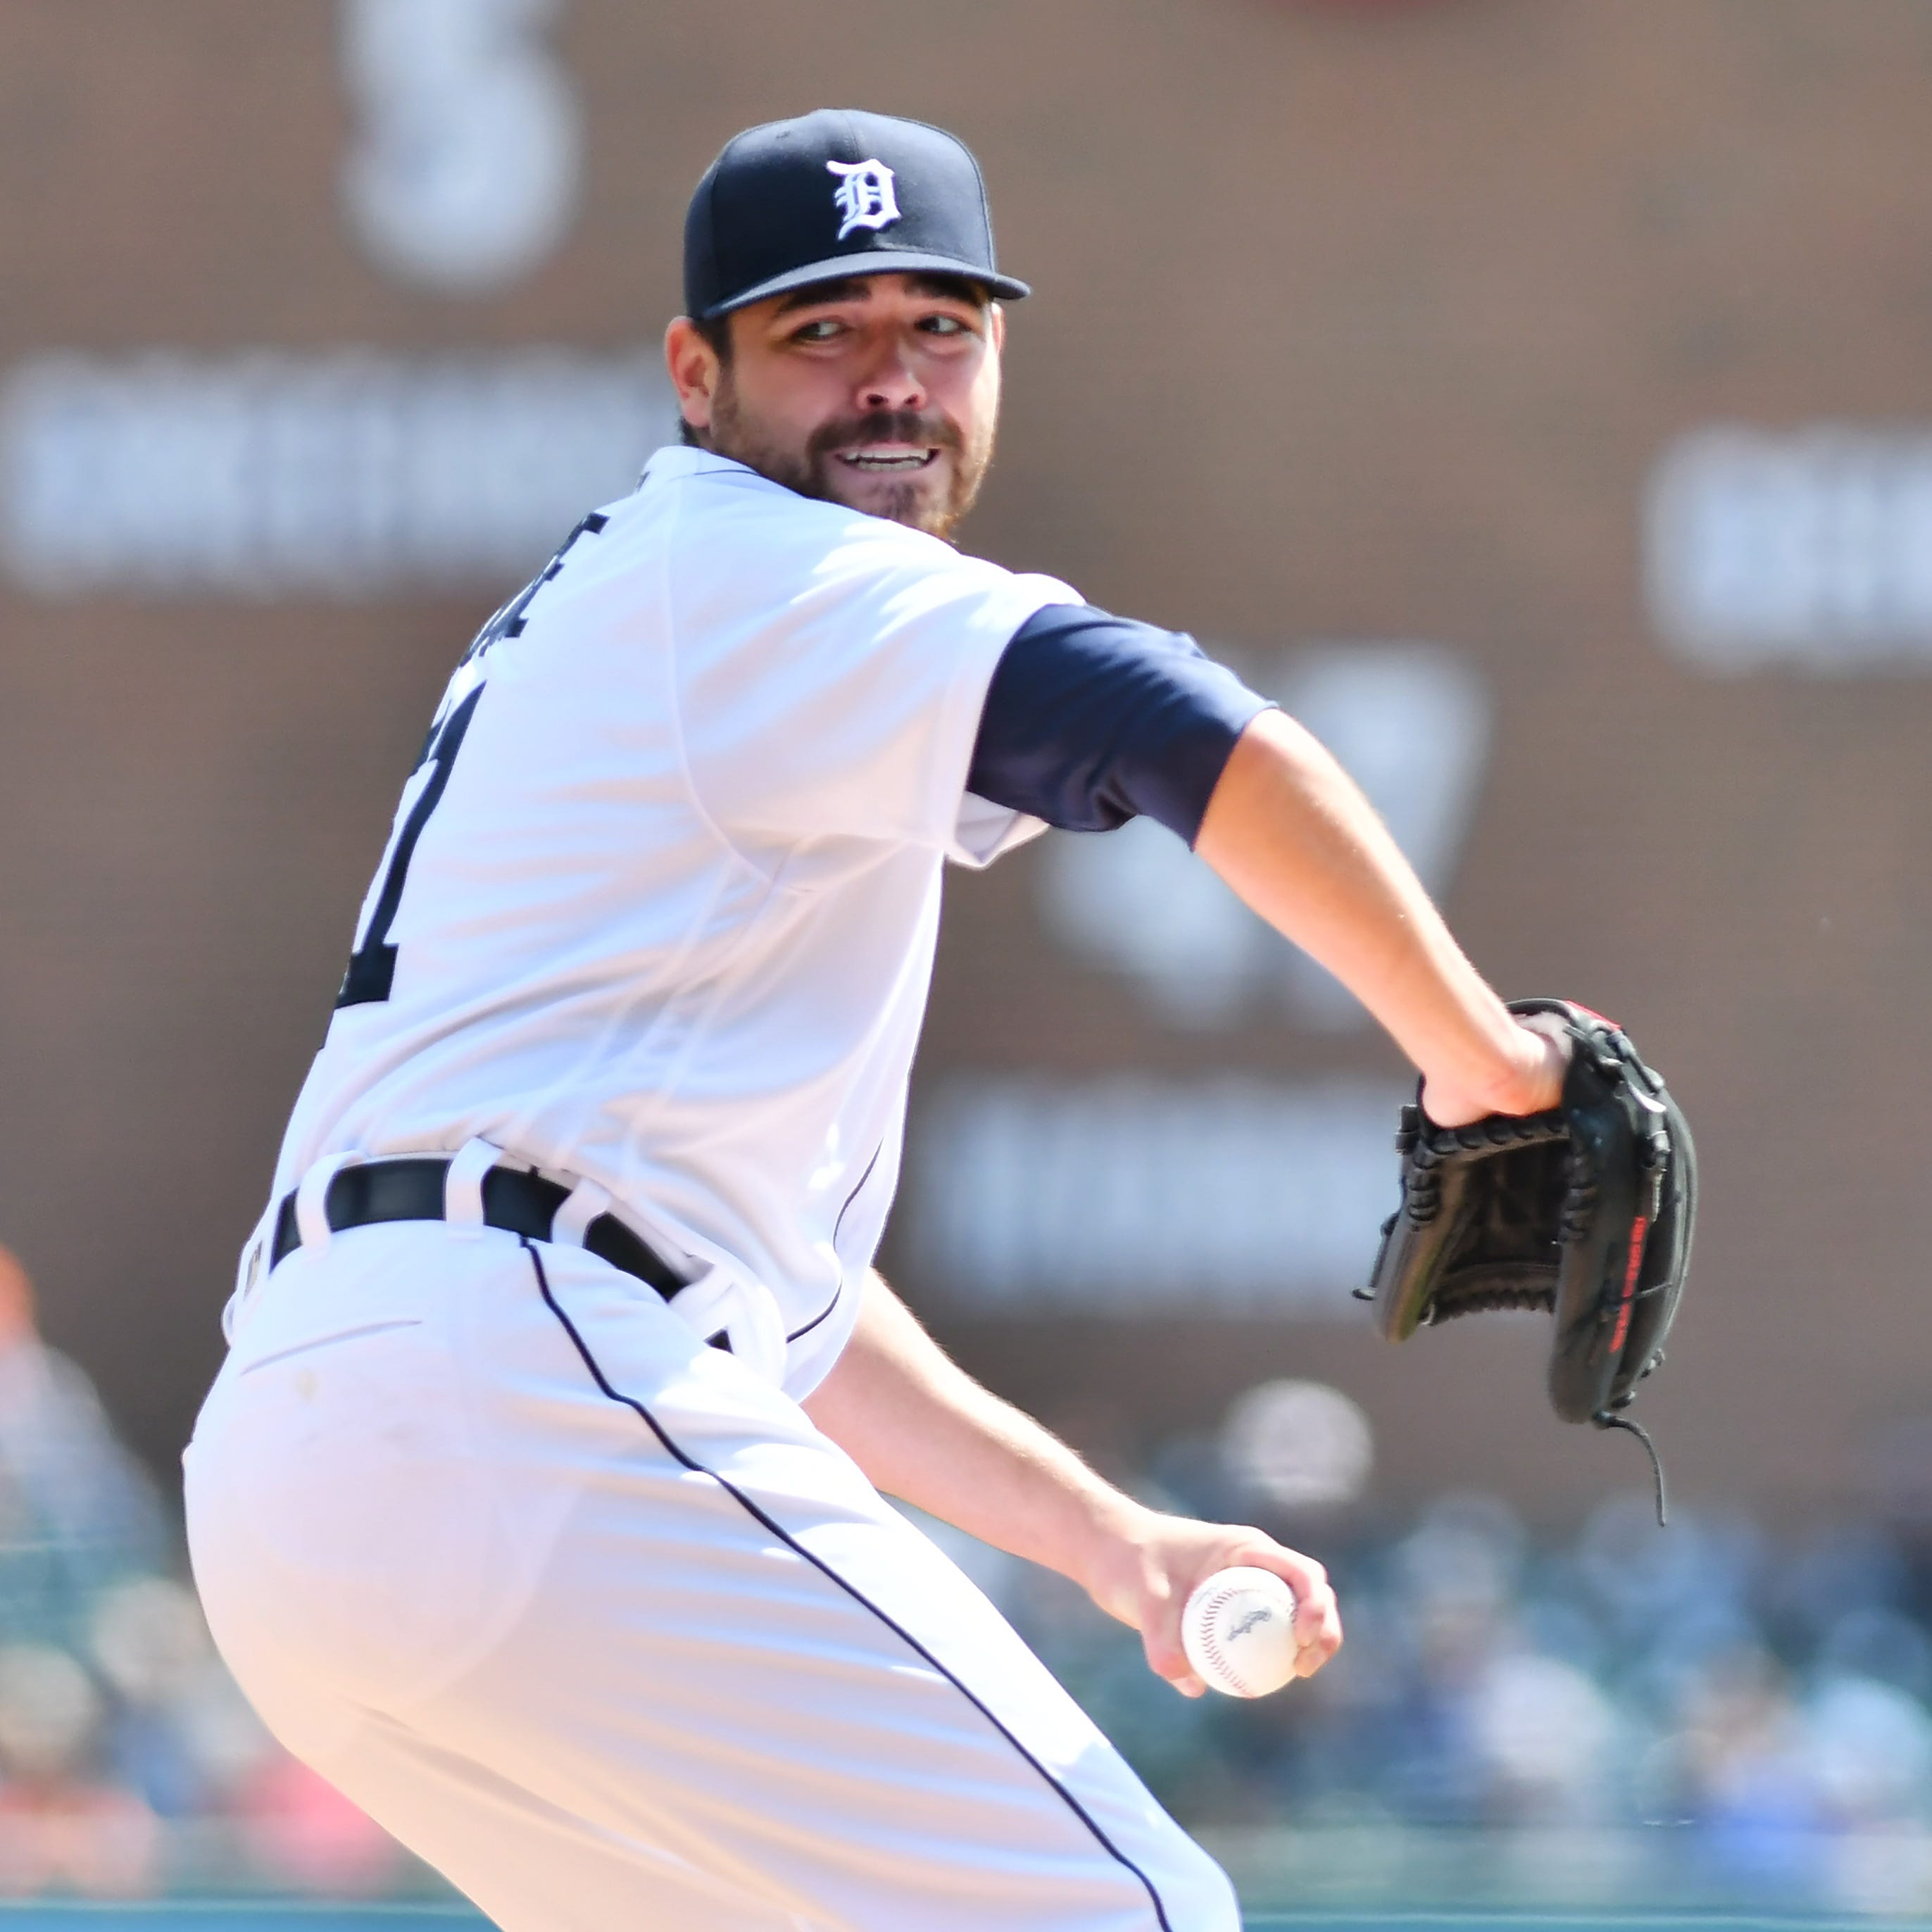 Tigers' options for Matt Moore's injured right knee: rehab or surgery